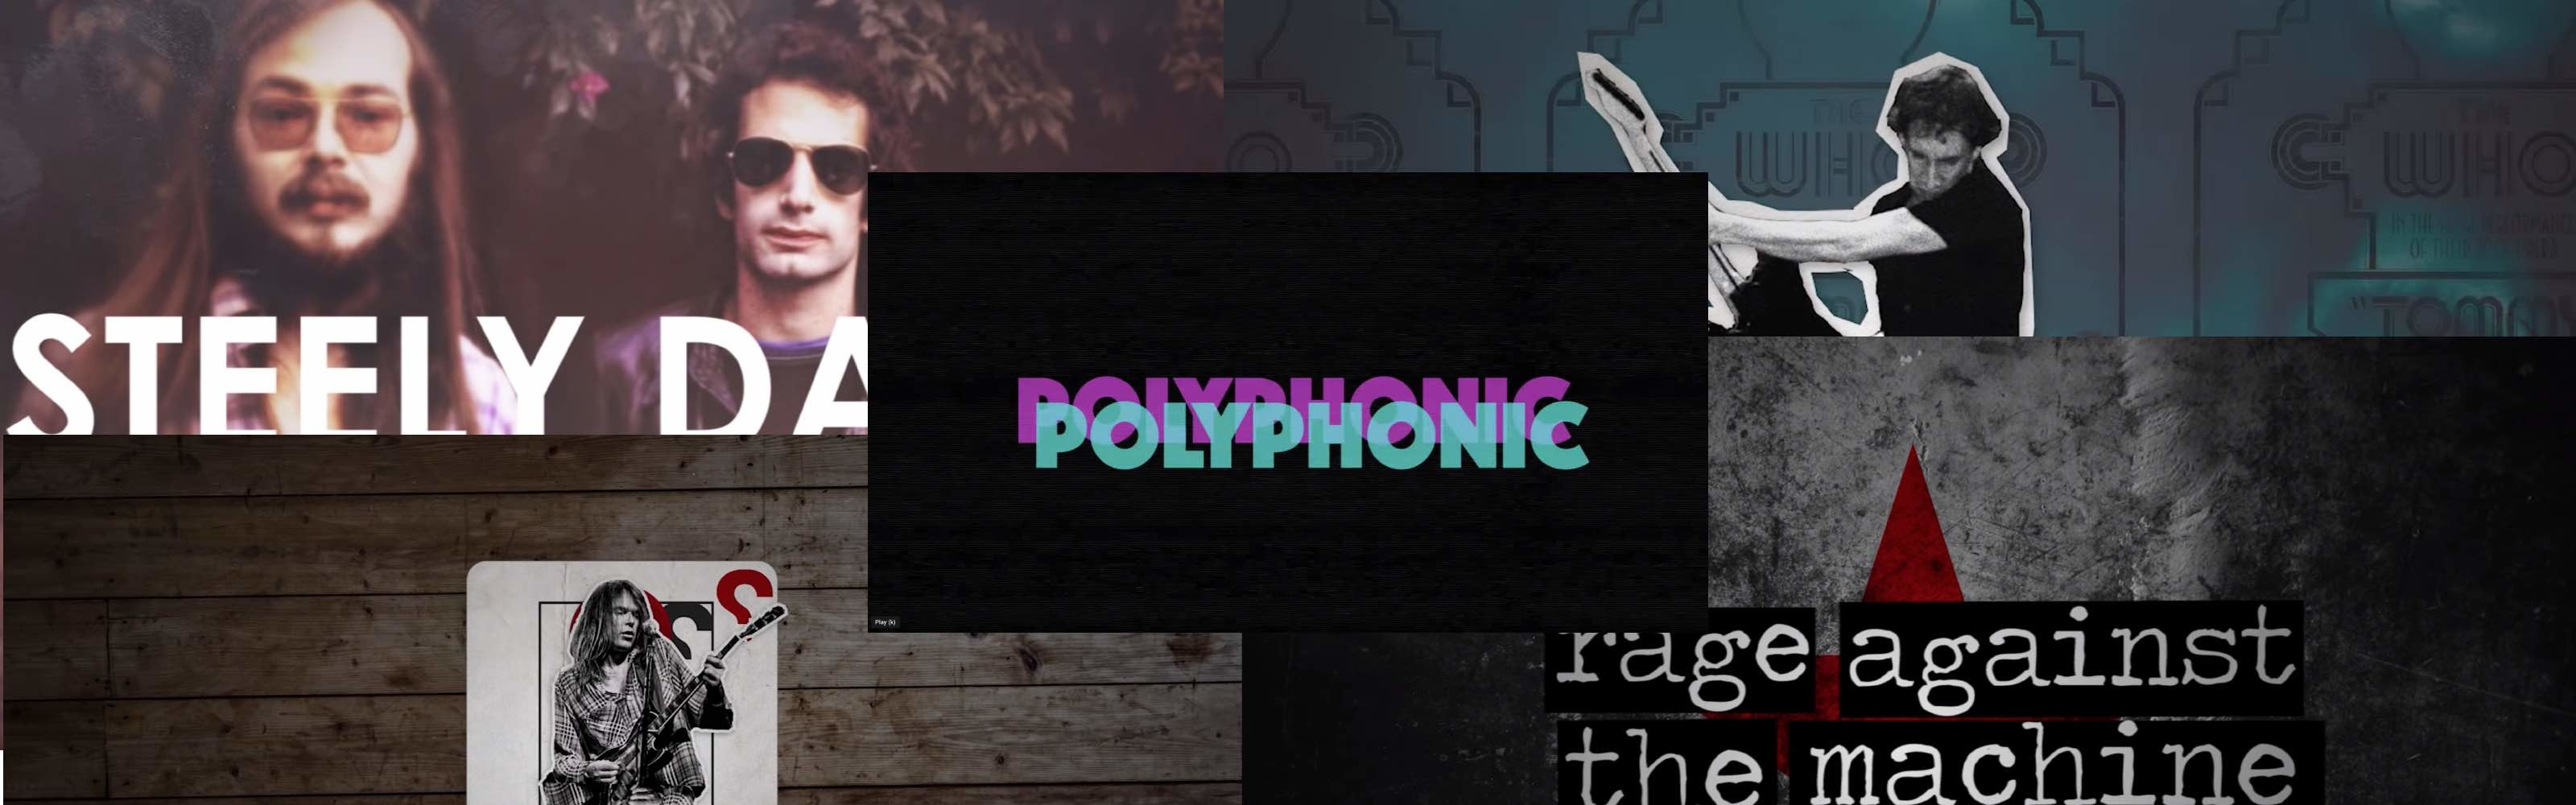 Polyphonic: Video Essays About Music